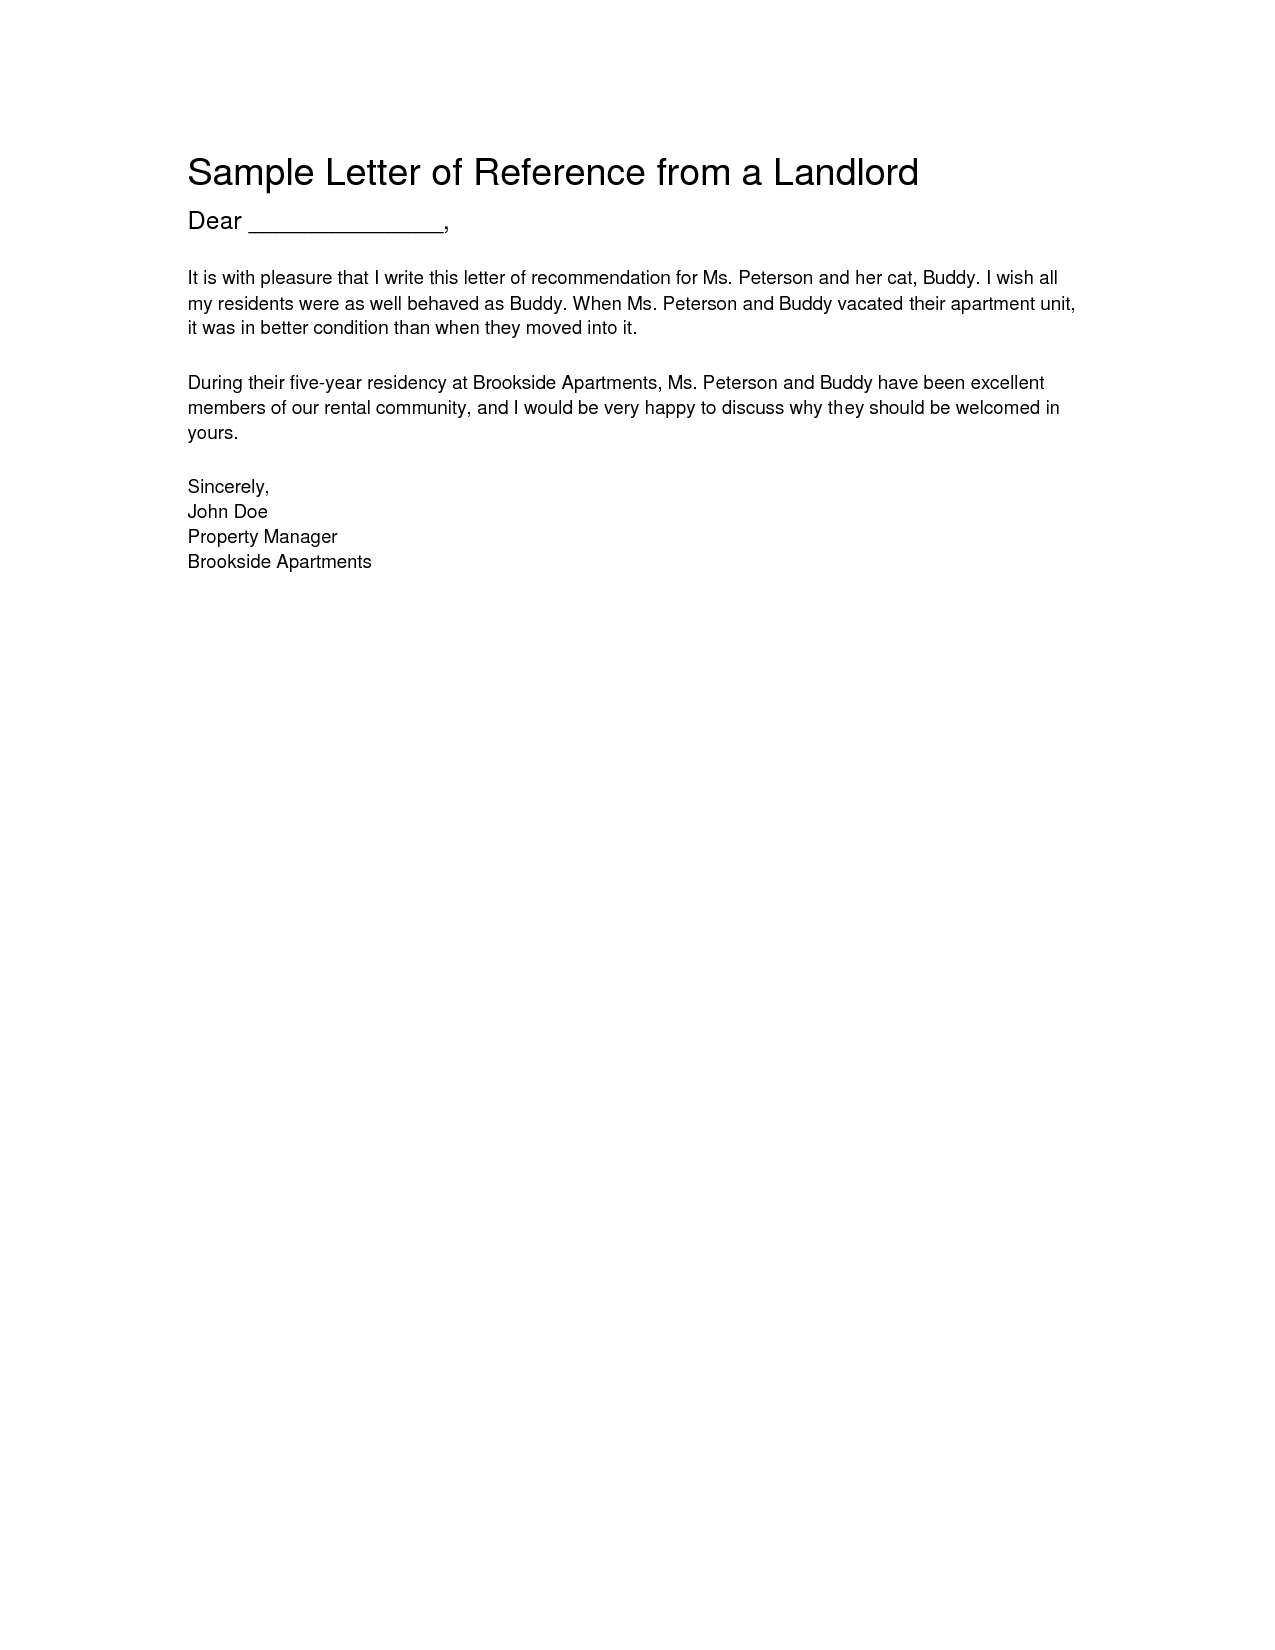 Housing Reference Letter Template - Letter Re Mendation From Landlord Letter Of Re Mendation